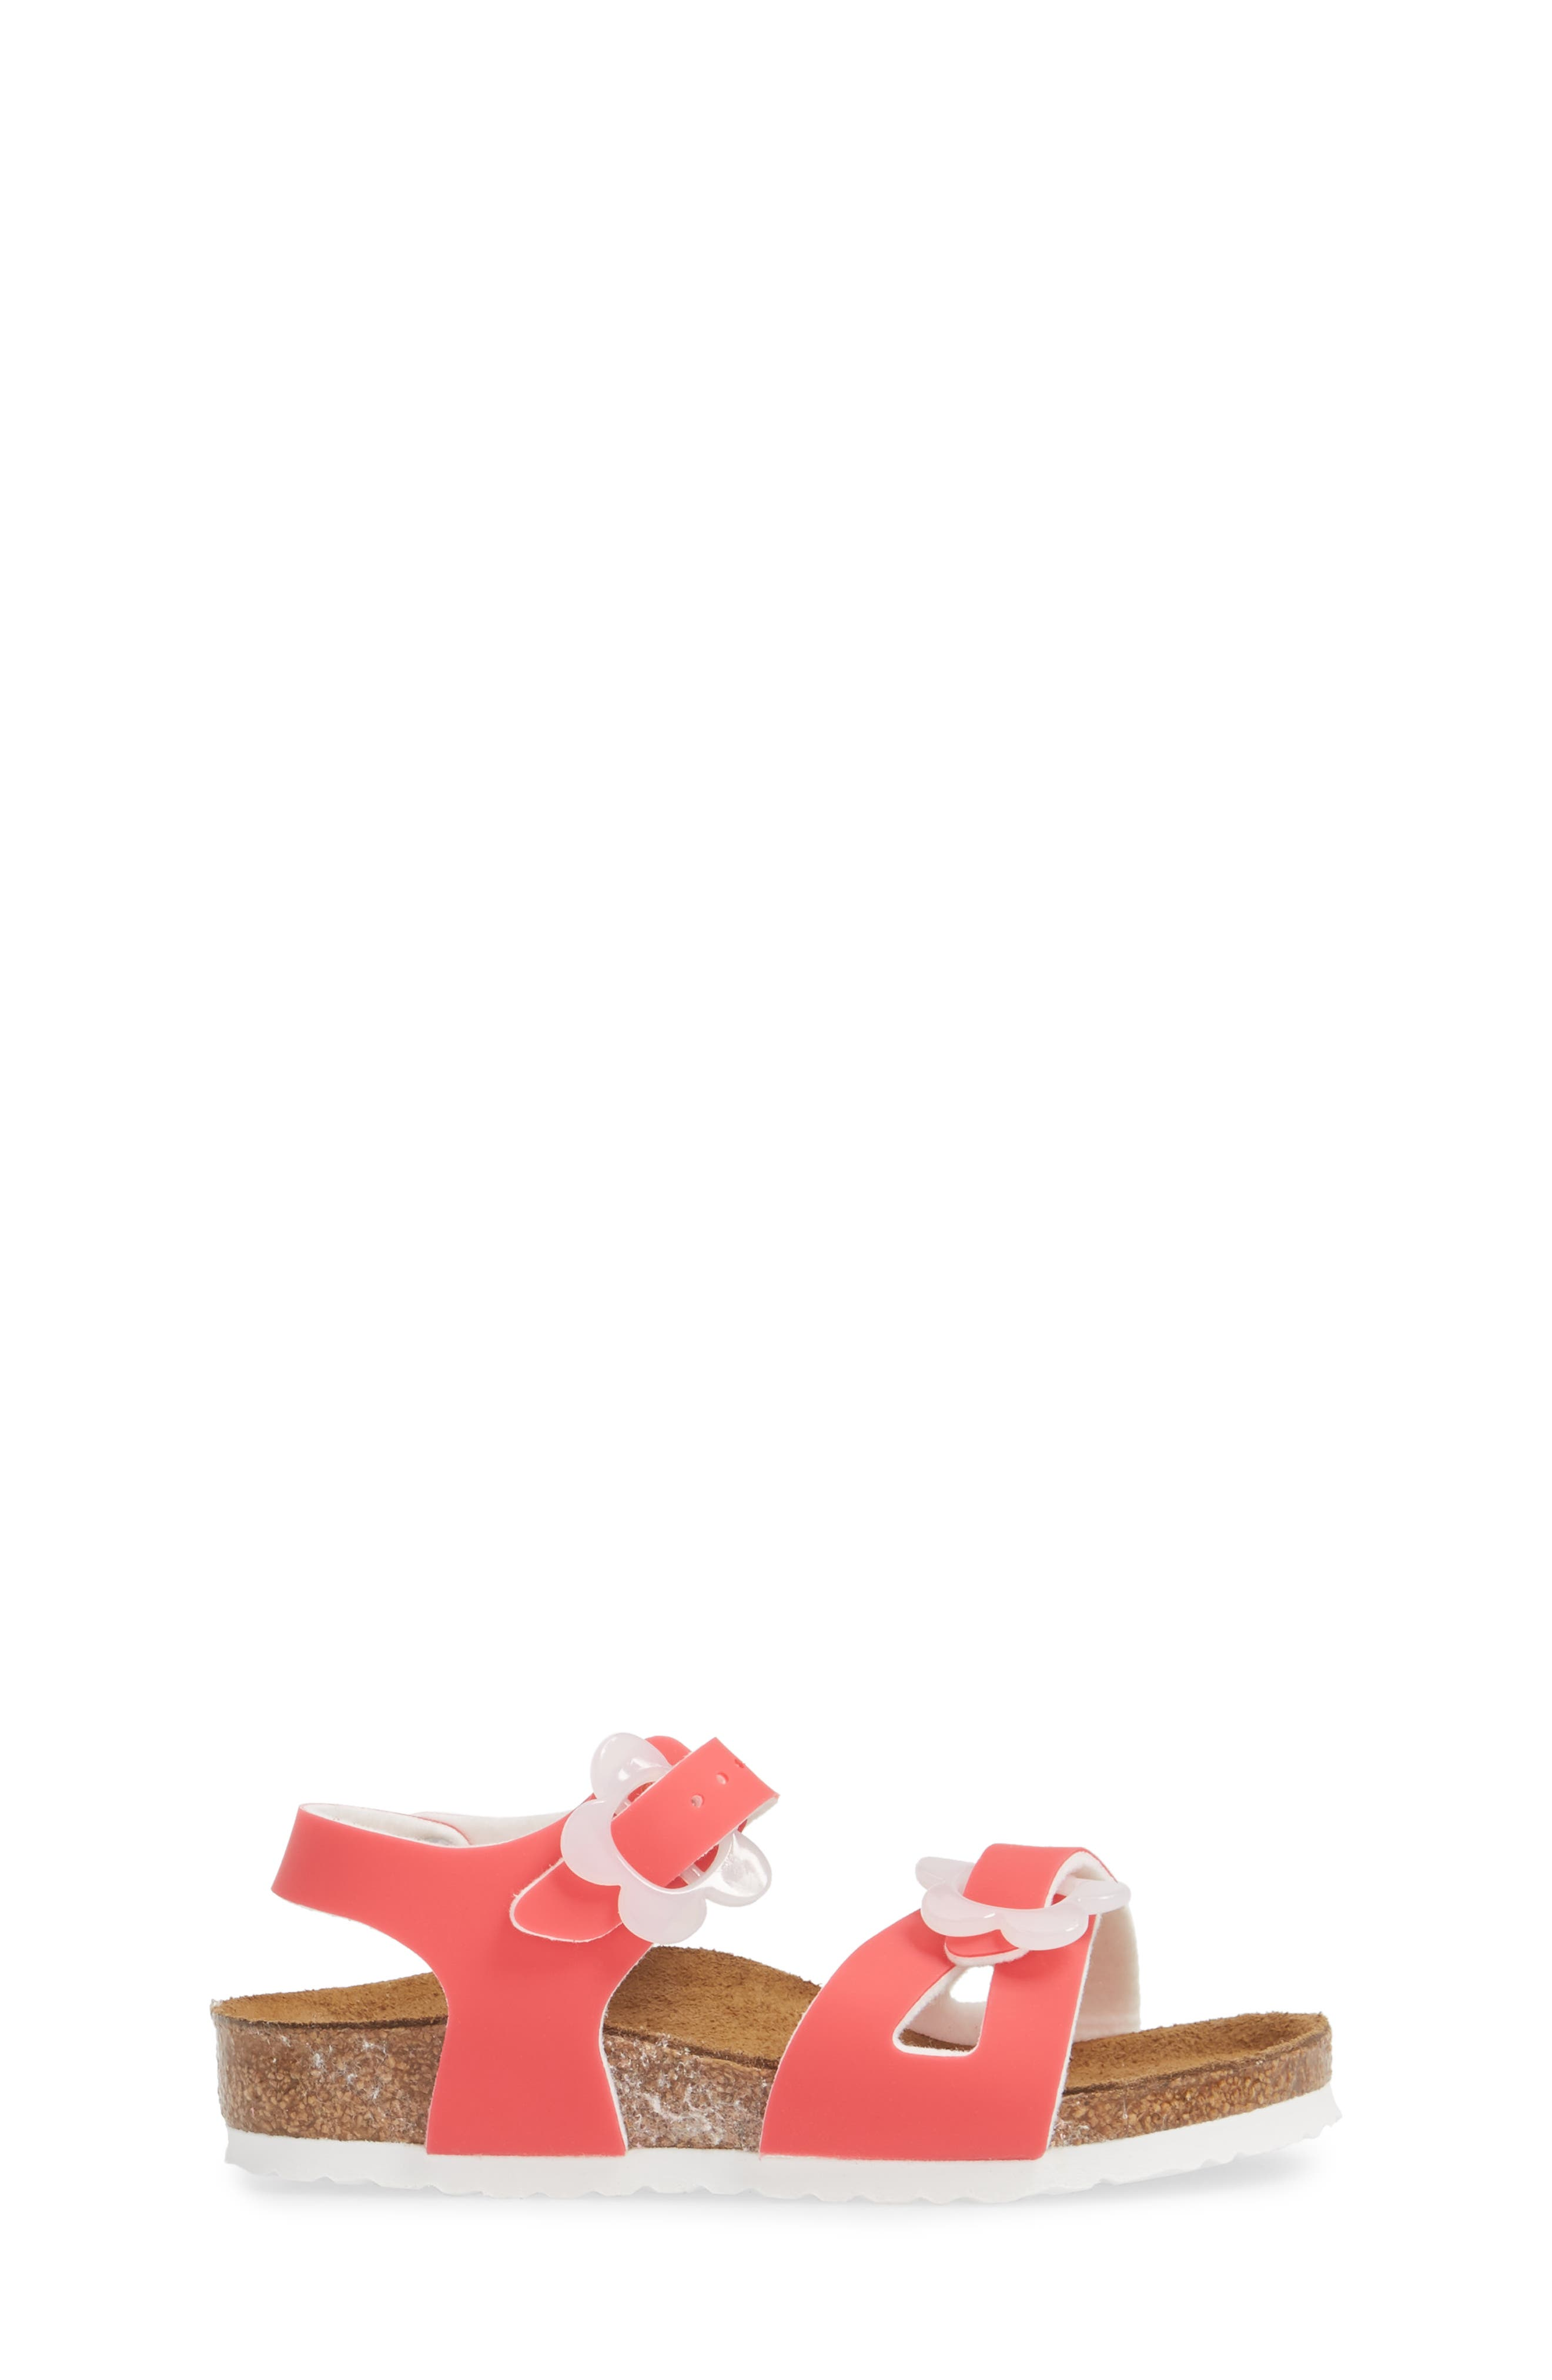 Rio Flowered Sandal,                             Alternate thumbnail 3, color,                             Candy Pink